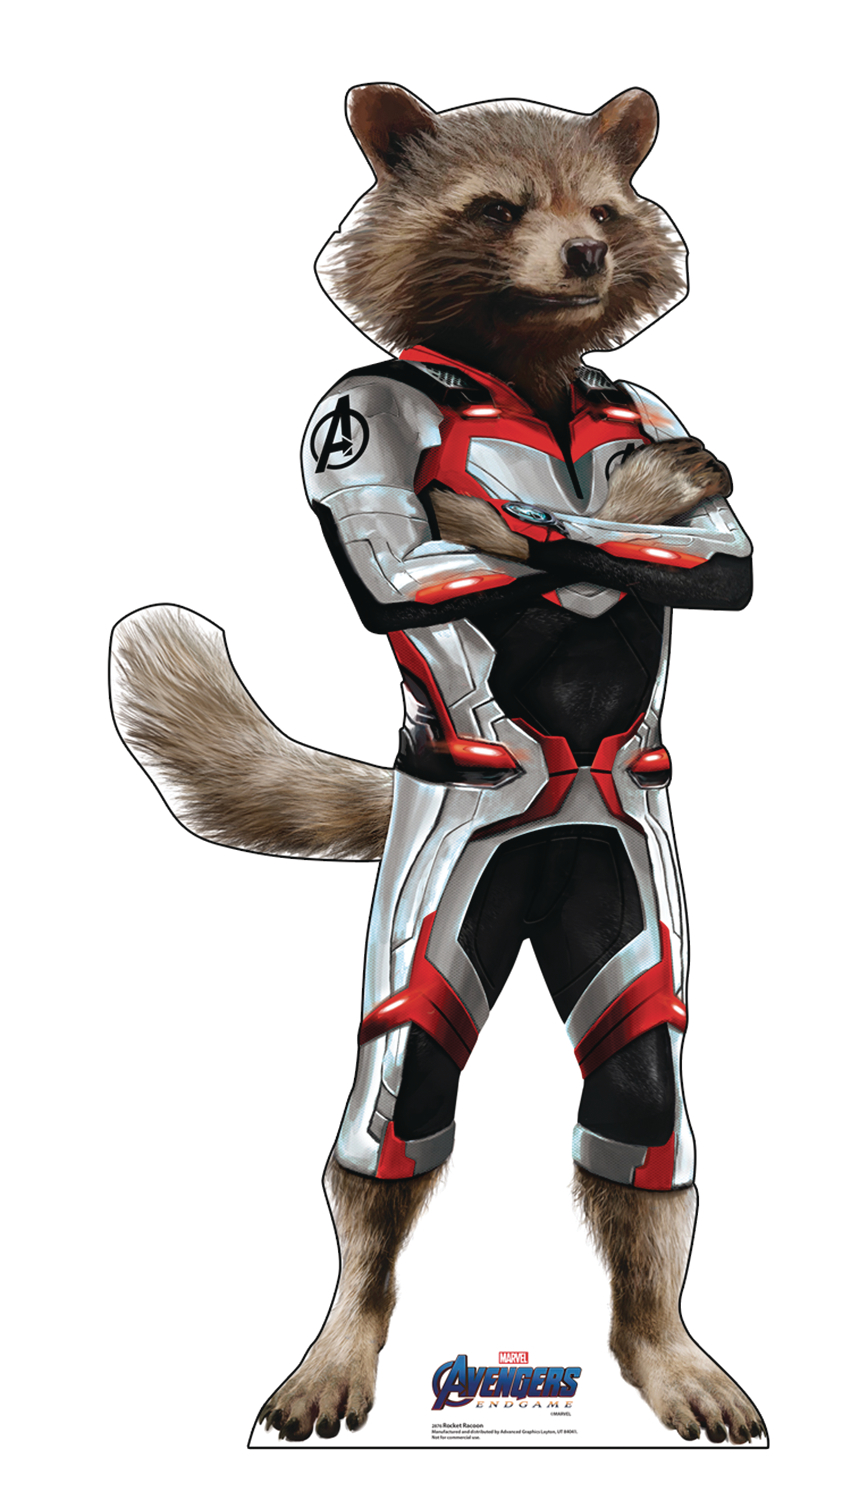 AVENGERS ENDGAME ROCKET RACCOON LIFE-SIZE STAND UP